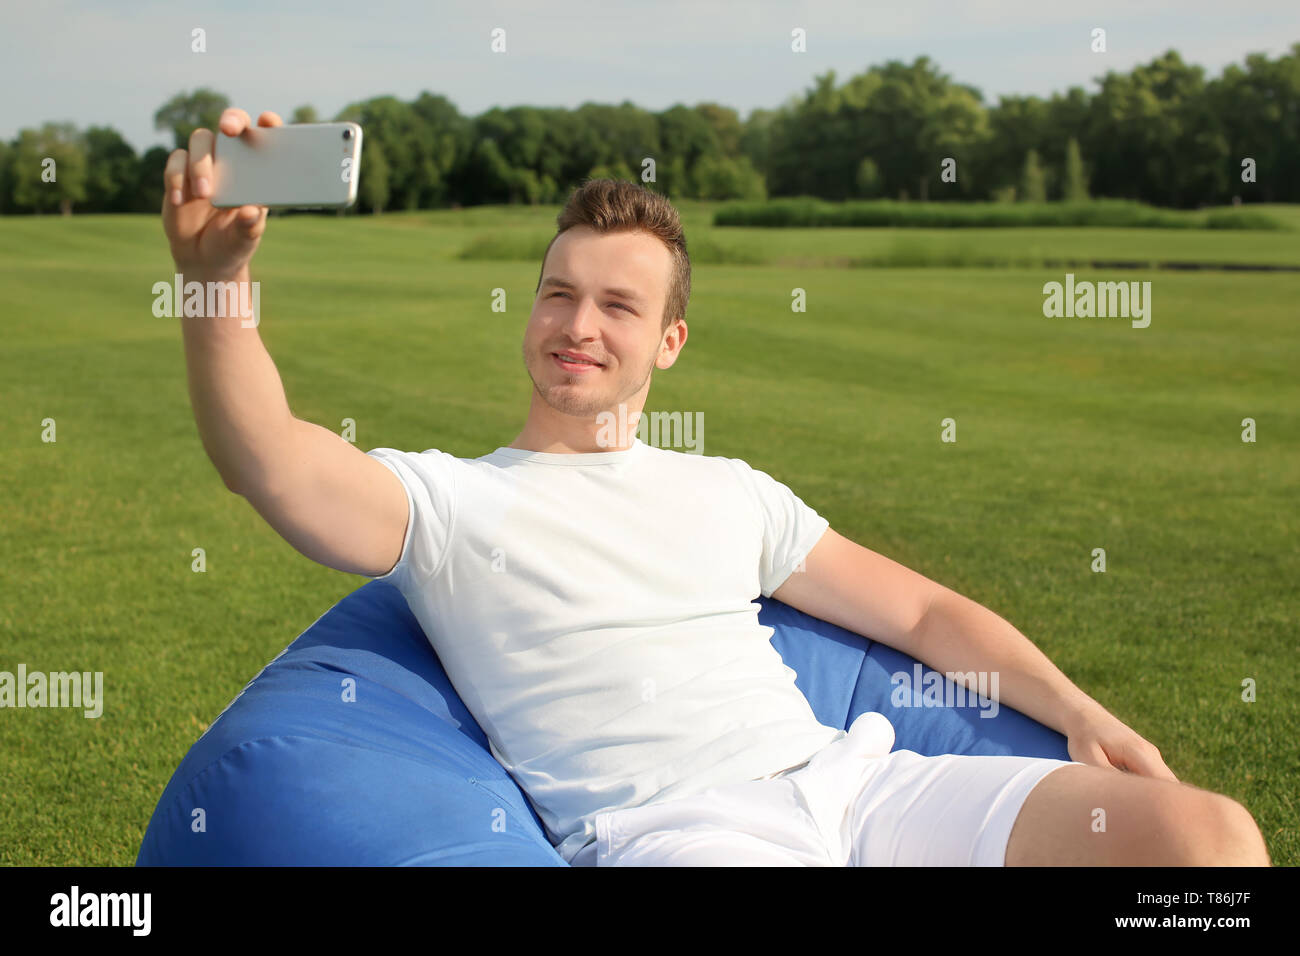 Young man taking selfie while sitting on bean bag chair outdoors - Stock Image